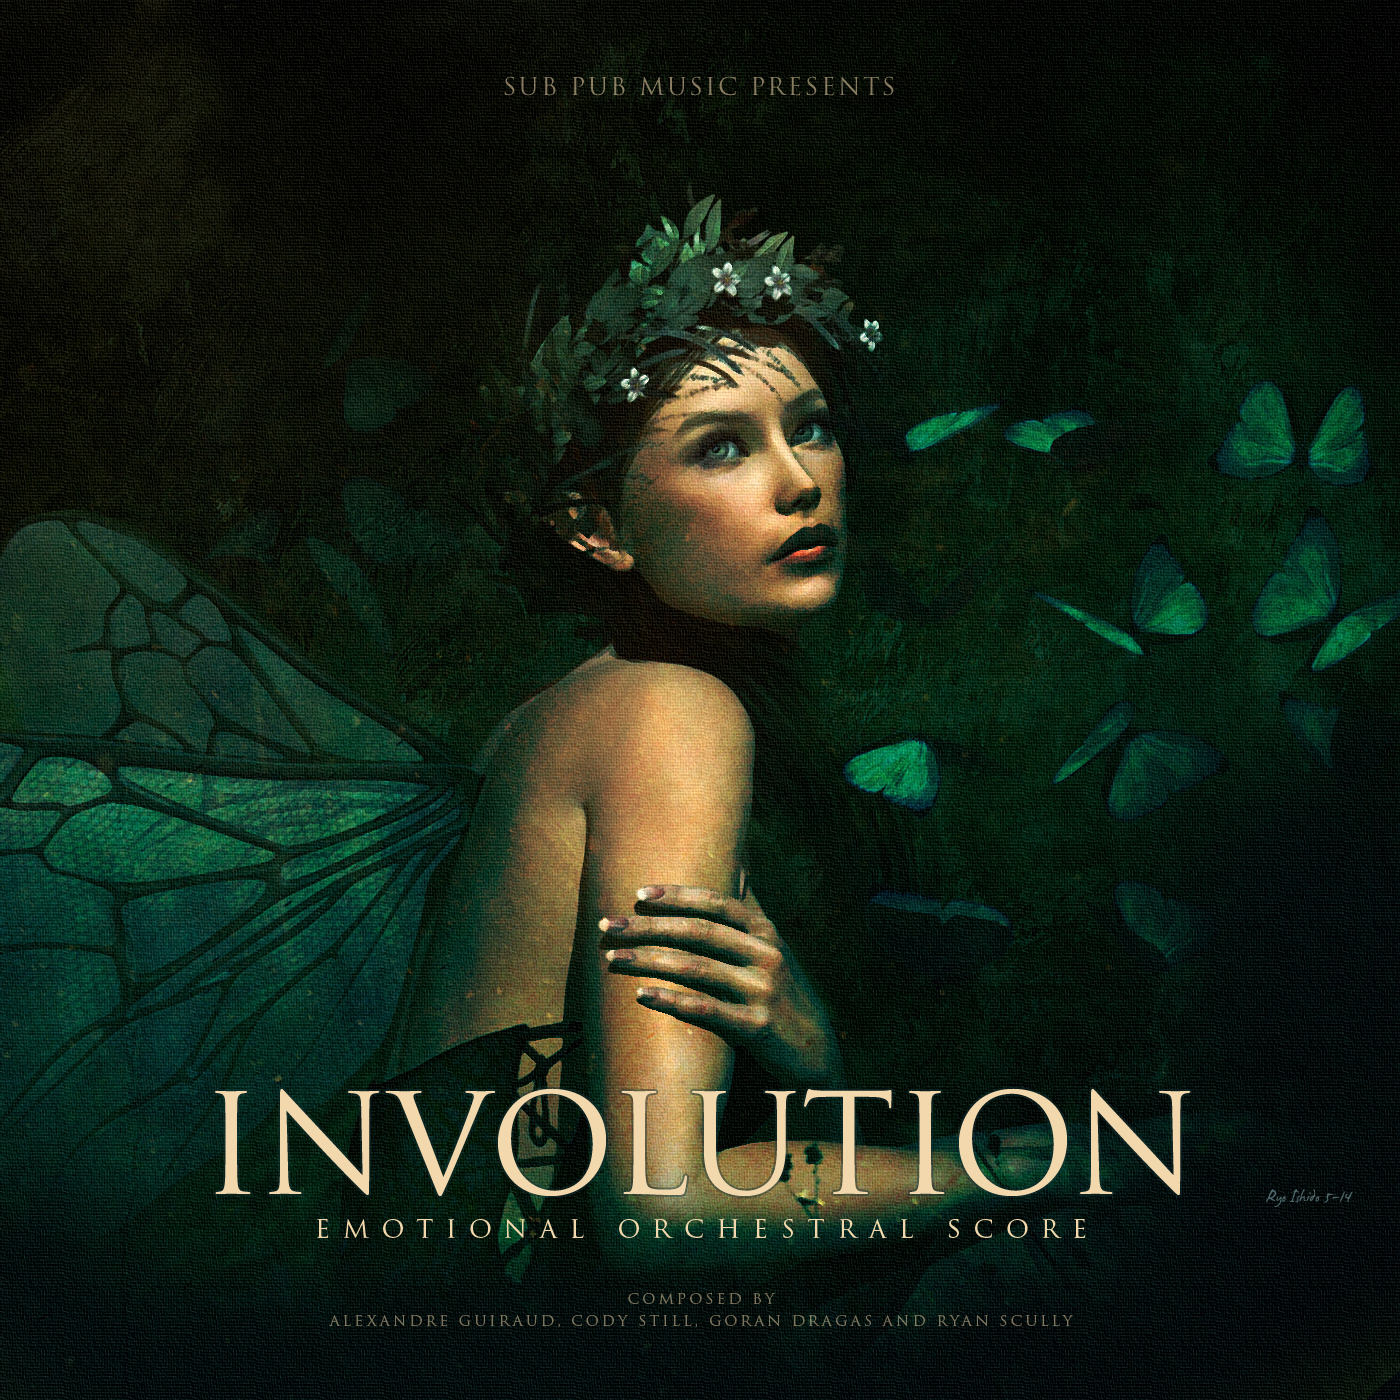 Copy of Sub Pub Music - Involution - Cody Still - Composer - Music